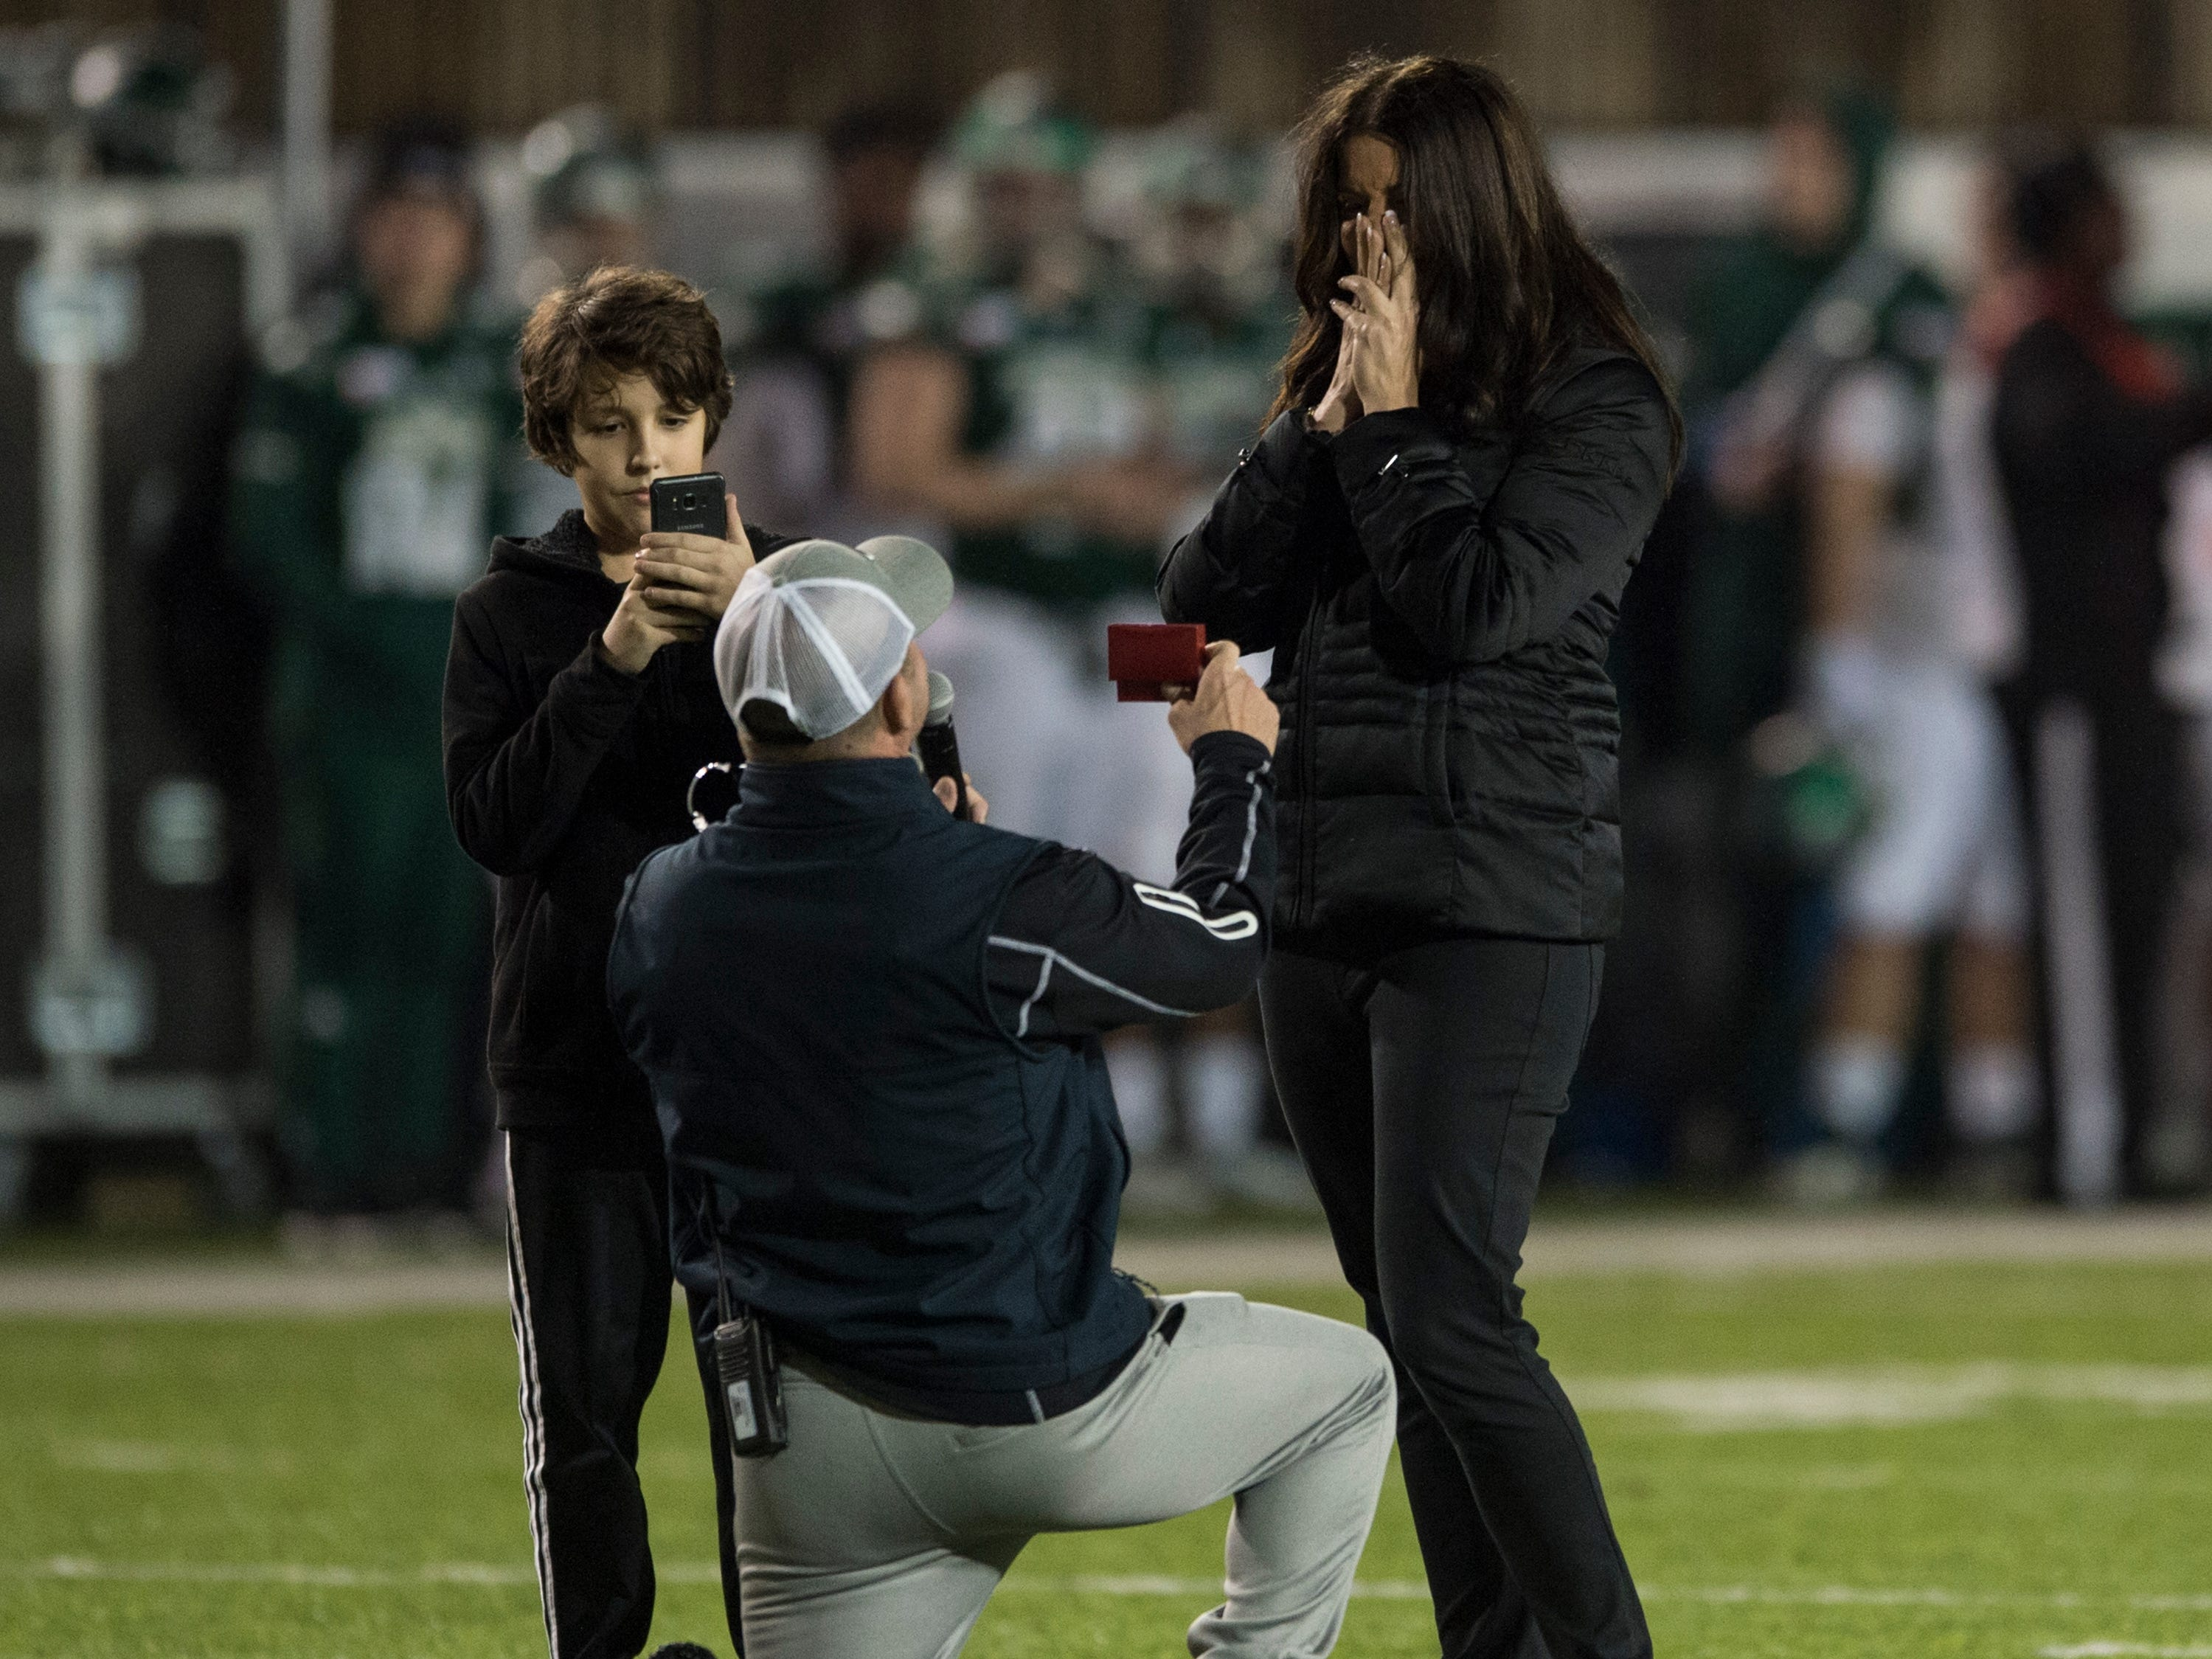 Ron Foster, director of hospitality for the Camellia Bowl, proposes to his girlfriend, Jen Wren, during the Camellia Bowl at Cramton Bowl in Montgomery, Ala., on Saturday, Dec. 15, 2018. Georgia Southern defeated Eastern Michigan 23-21.